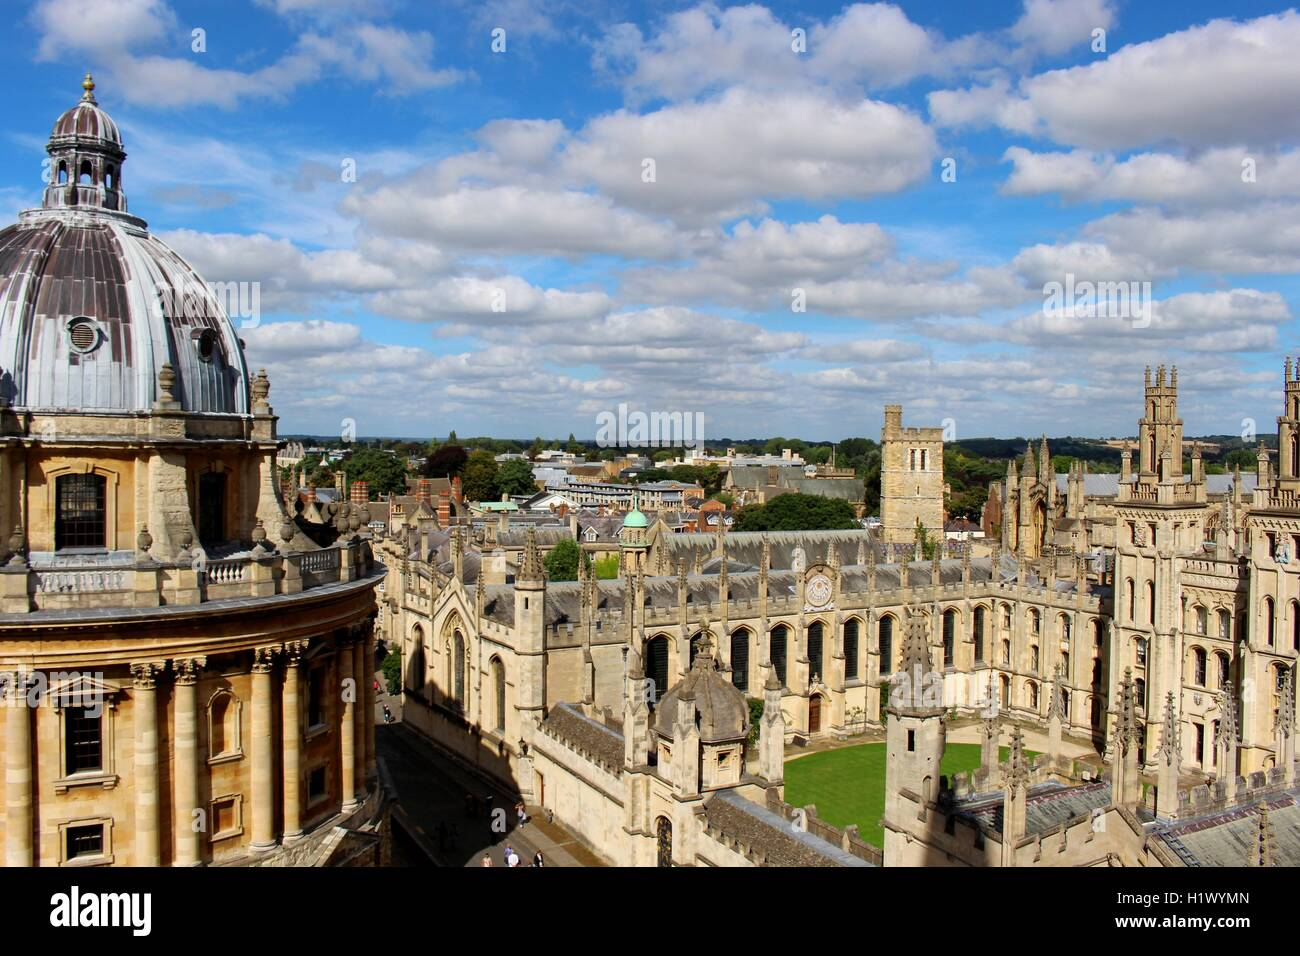 Panoramic views of Oxford from the top of St Mary's Church. - Stock Image